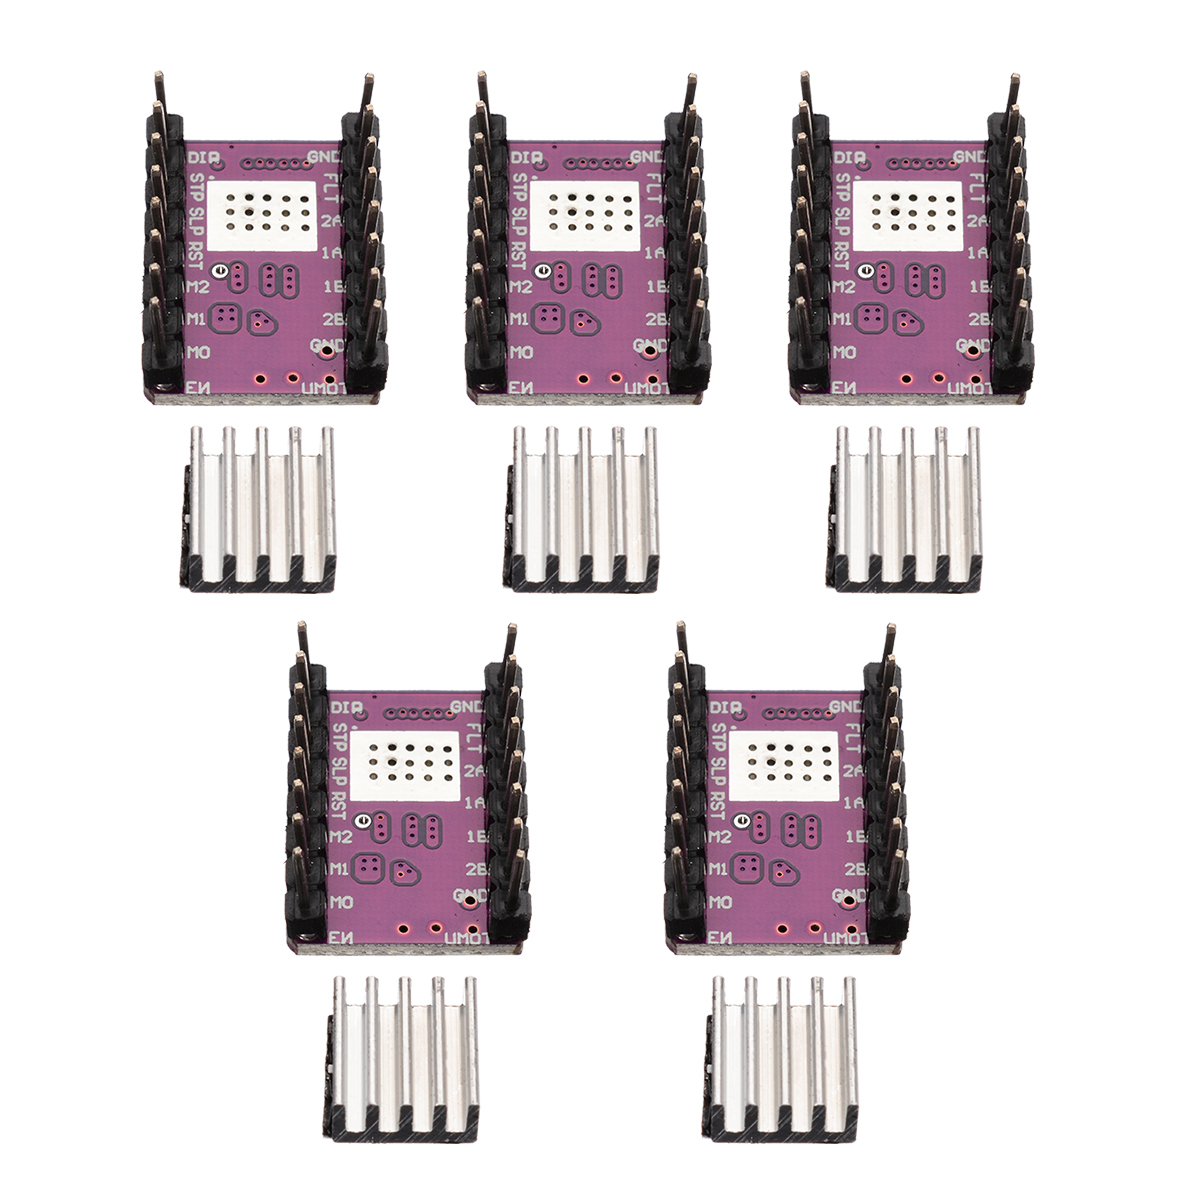 5 Sets Stepper <font><b>Motor</b></font> <font><b>Driver</b></font> Module DRV8825 Stepper <font><b>Motor</b></font> <font><b>Driver</b></font> Module Built-in Regulator StepStick 45V For 3D Printer Parts image